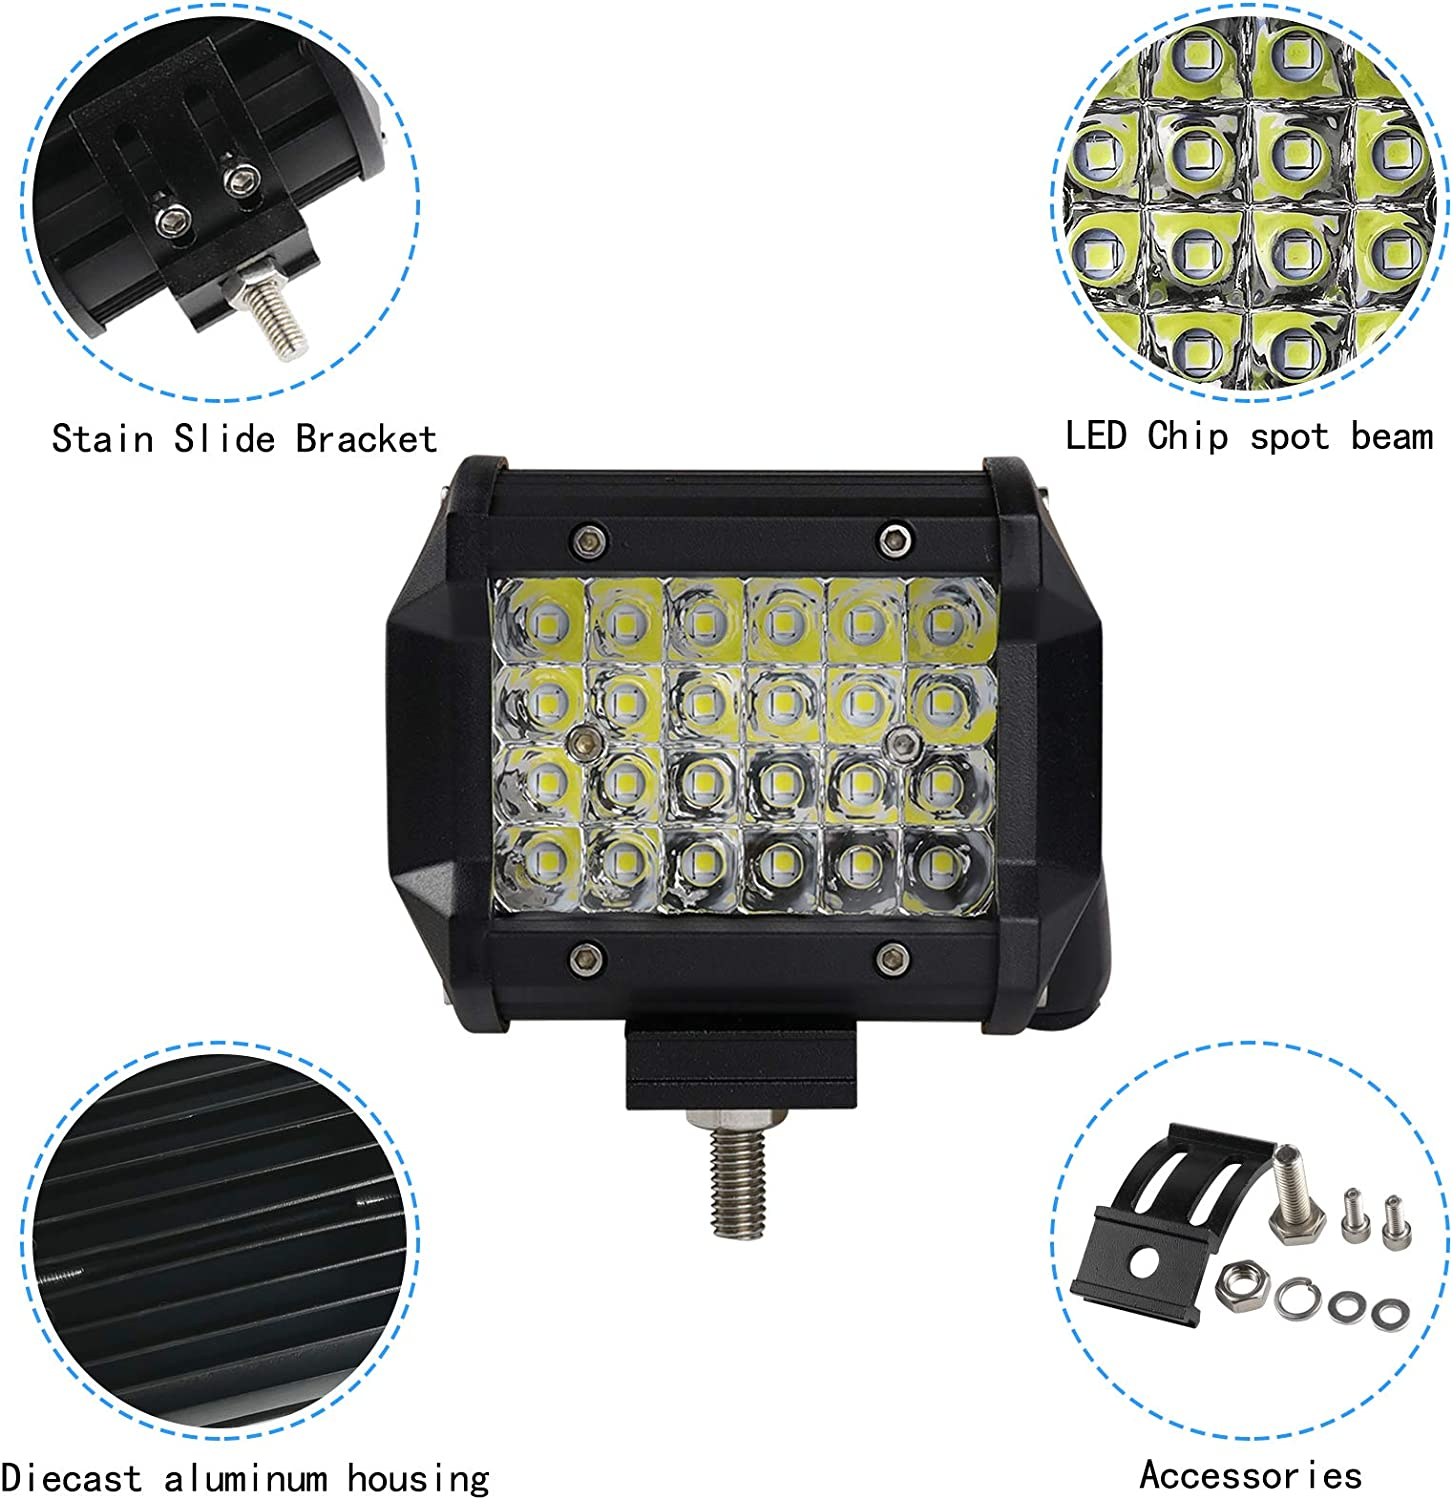 3 Years Warranty Woku Led pods flood Light Bar 2PCS 4 inch 120W Triple Rows Driving Fog Off Road Lights Spot Flood Combo Beam Waterproof Led Cubes Light for UTV SUV JEEP Truck and Boat